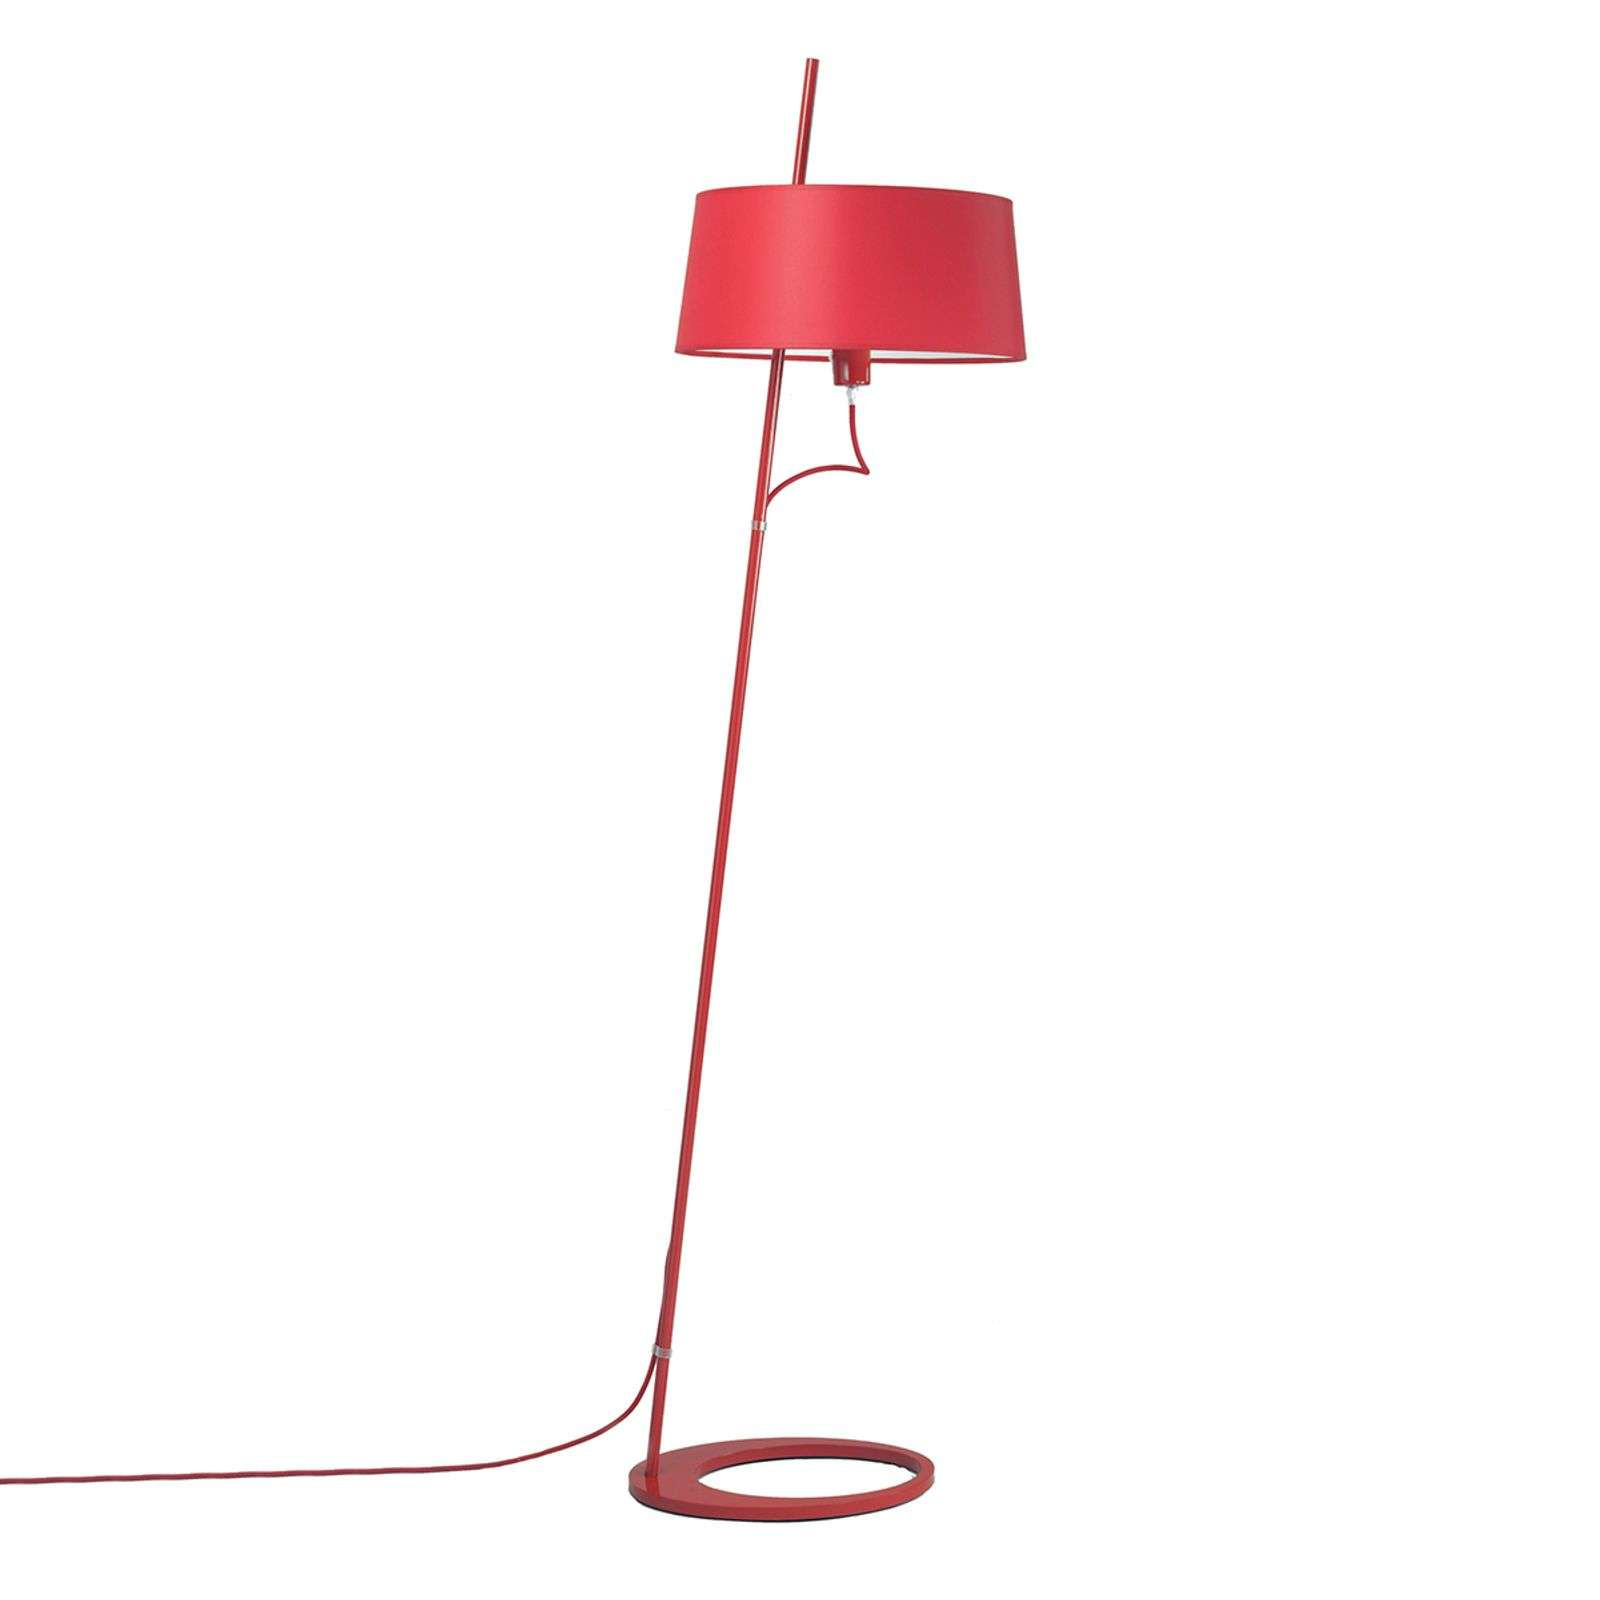 Lampadaire Bolight en rouge